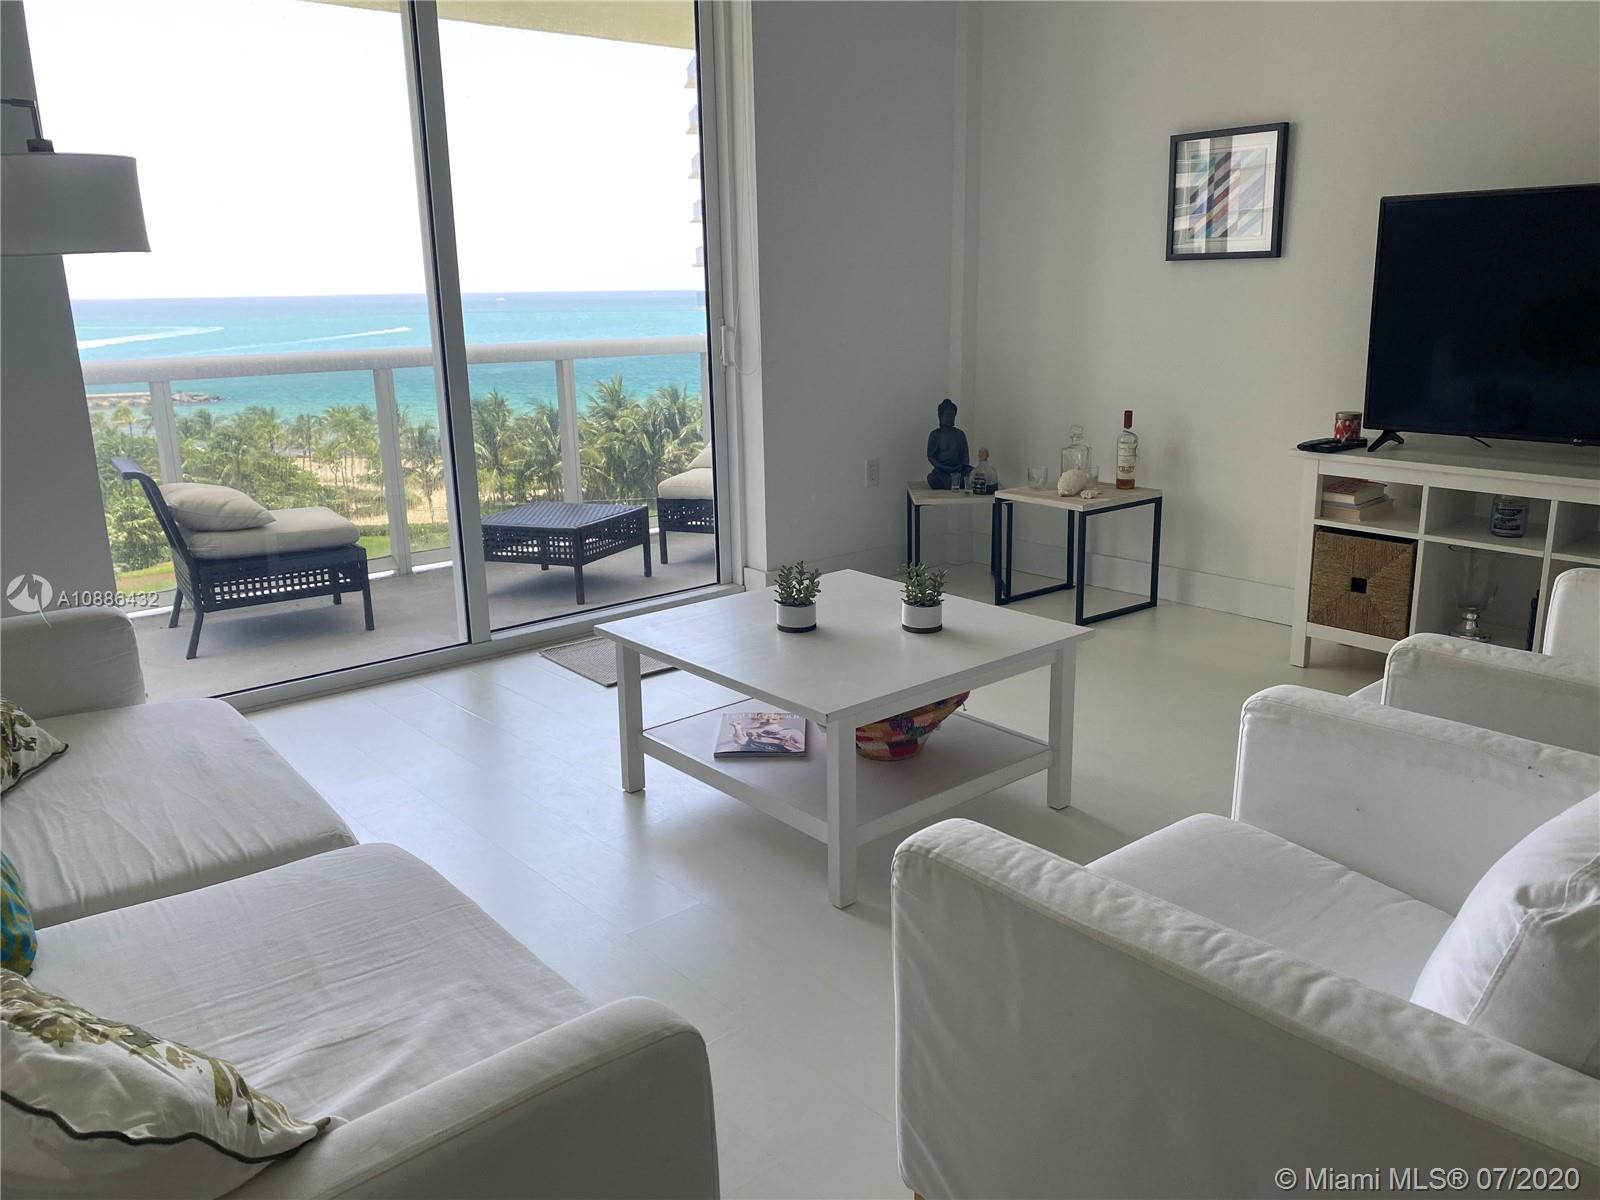 10275 Collins Ave #734 Property Photo - Bal Harbour, FL real estate listing